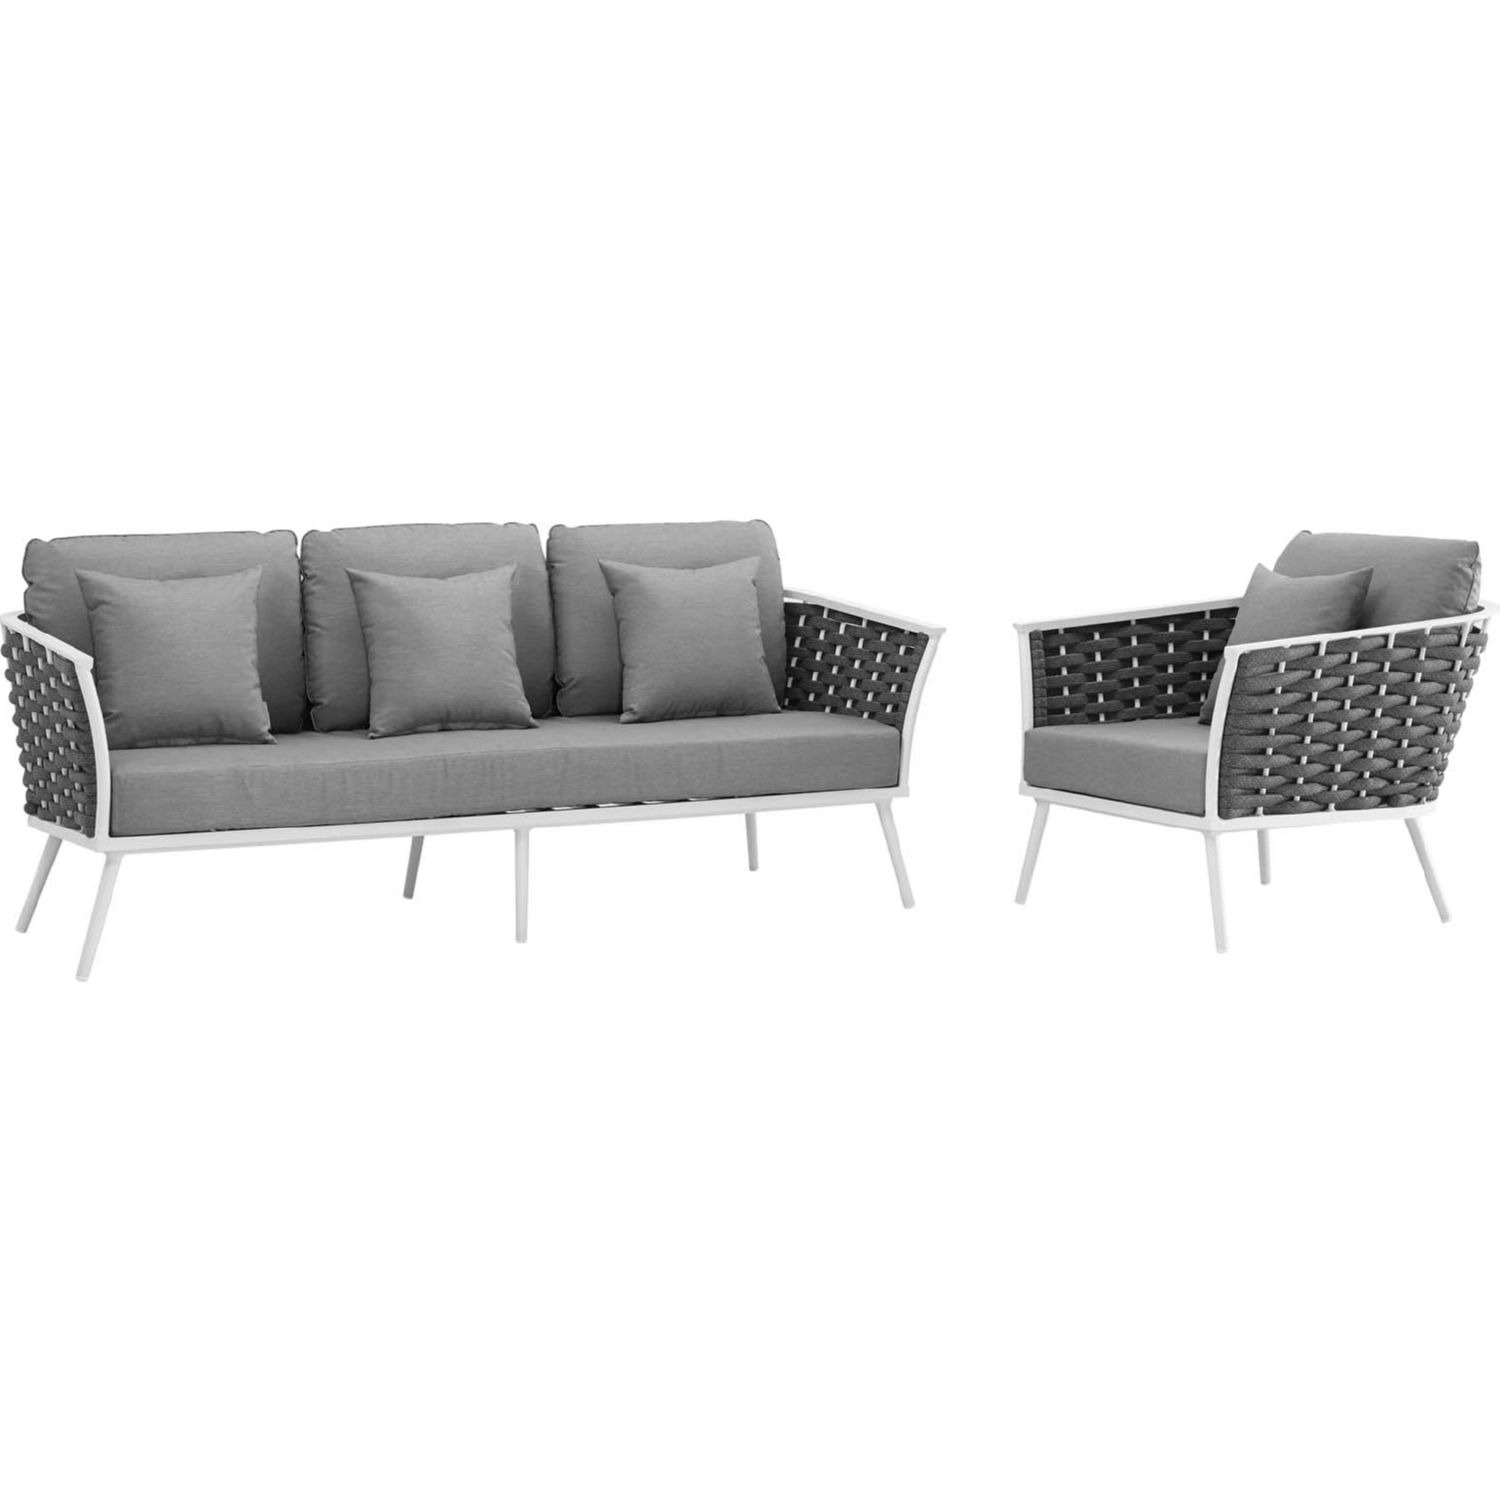 2-Piece Outdoor Sectional In Gray Foam Padding - image-0